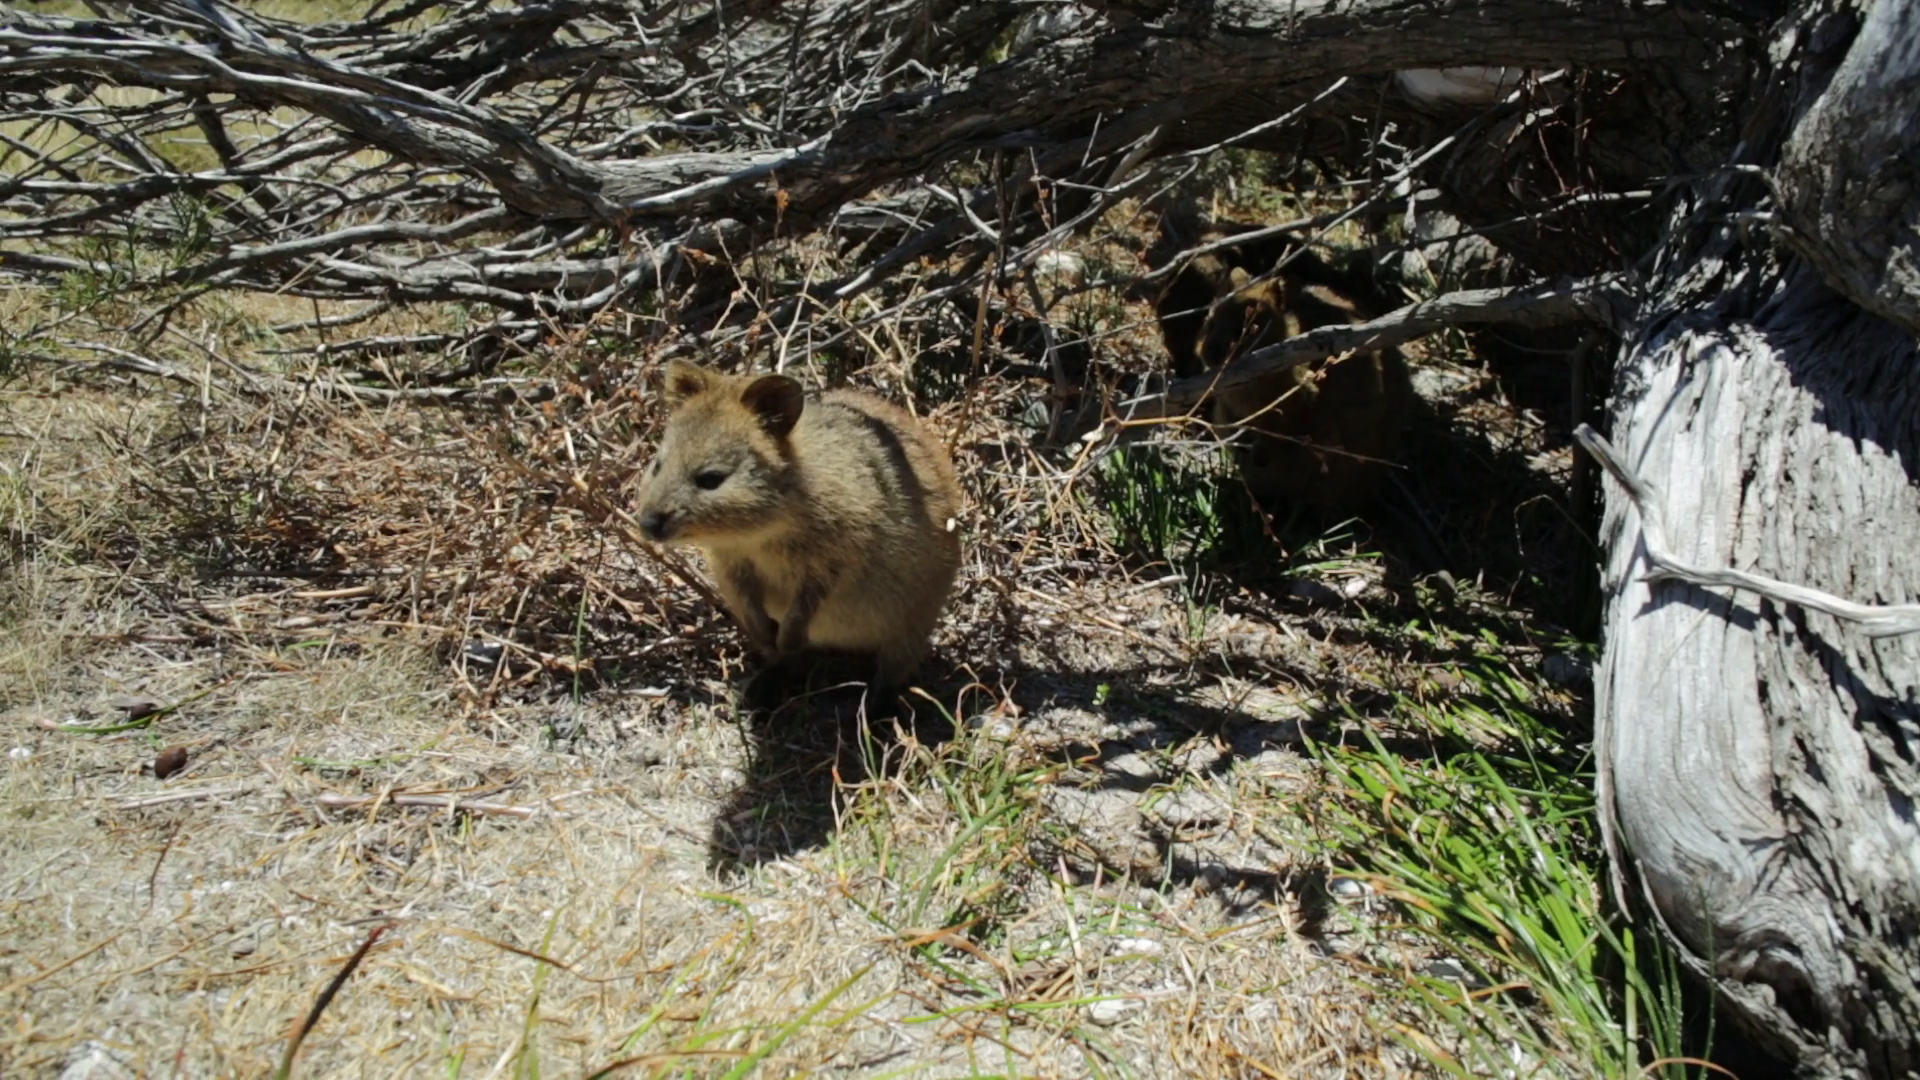 A friendly Quokka on Rottnest Island in a sunny day, Western Australia,  Australia. Quokka is at risk of extinction and is protected. - Australian Animal PNG HD